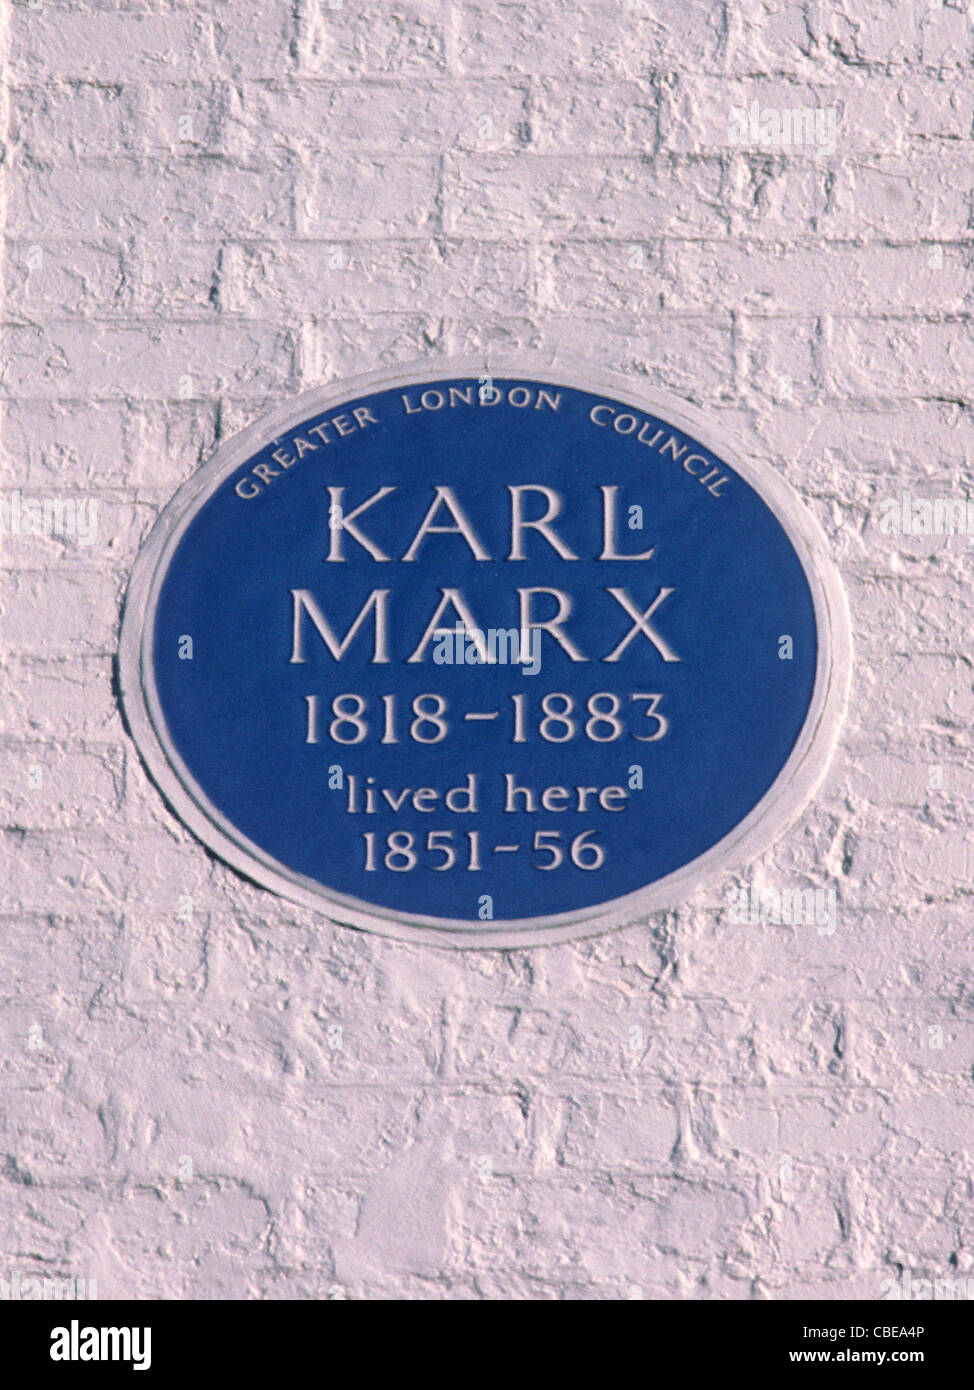 Blue Plaque, Karl Marx, Dean Street, Soho, London, England UK English plaques Greater London Council - Stock Image